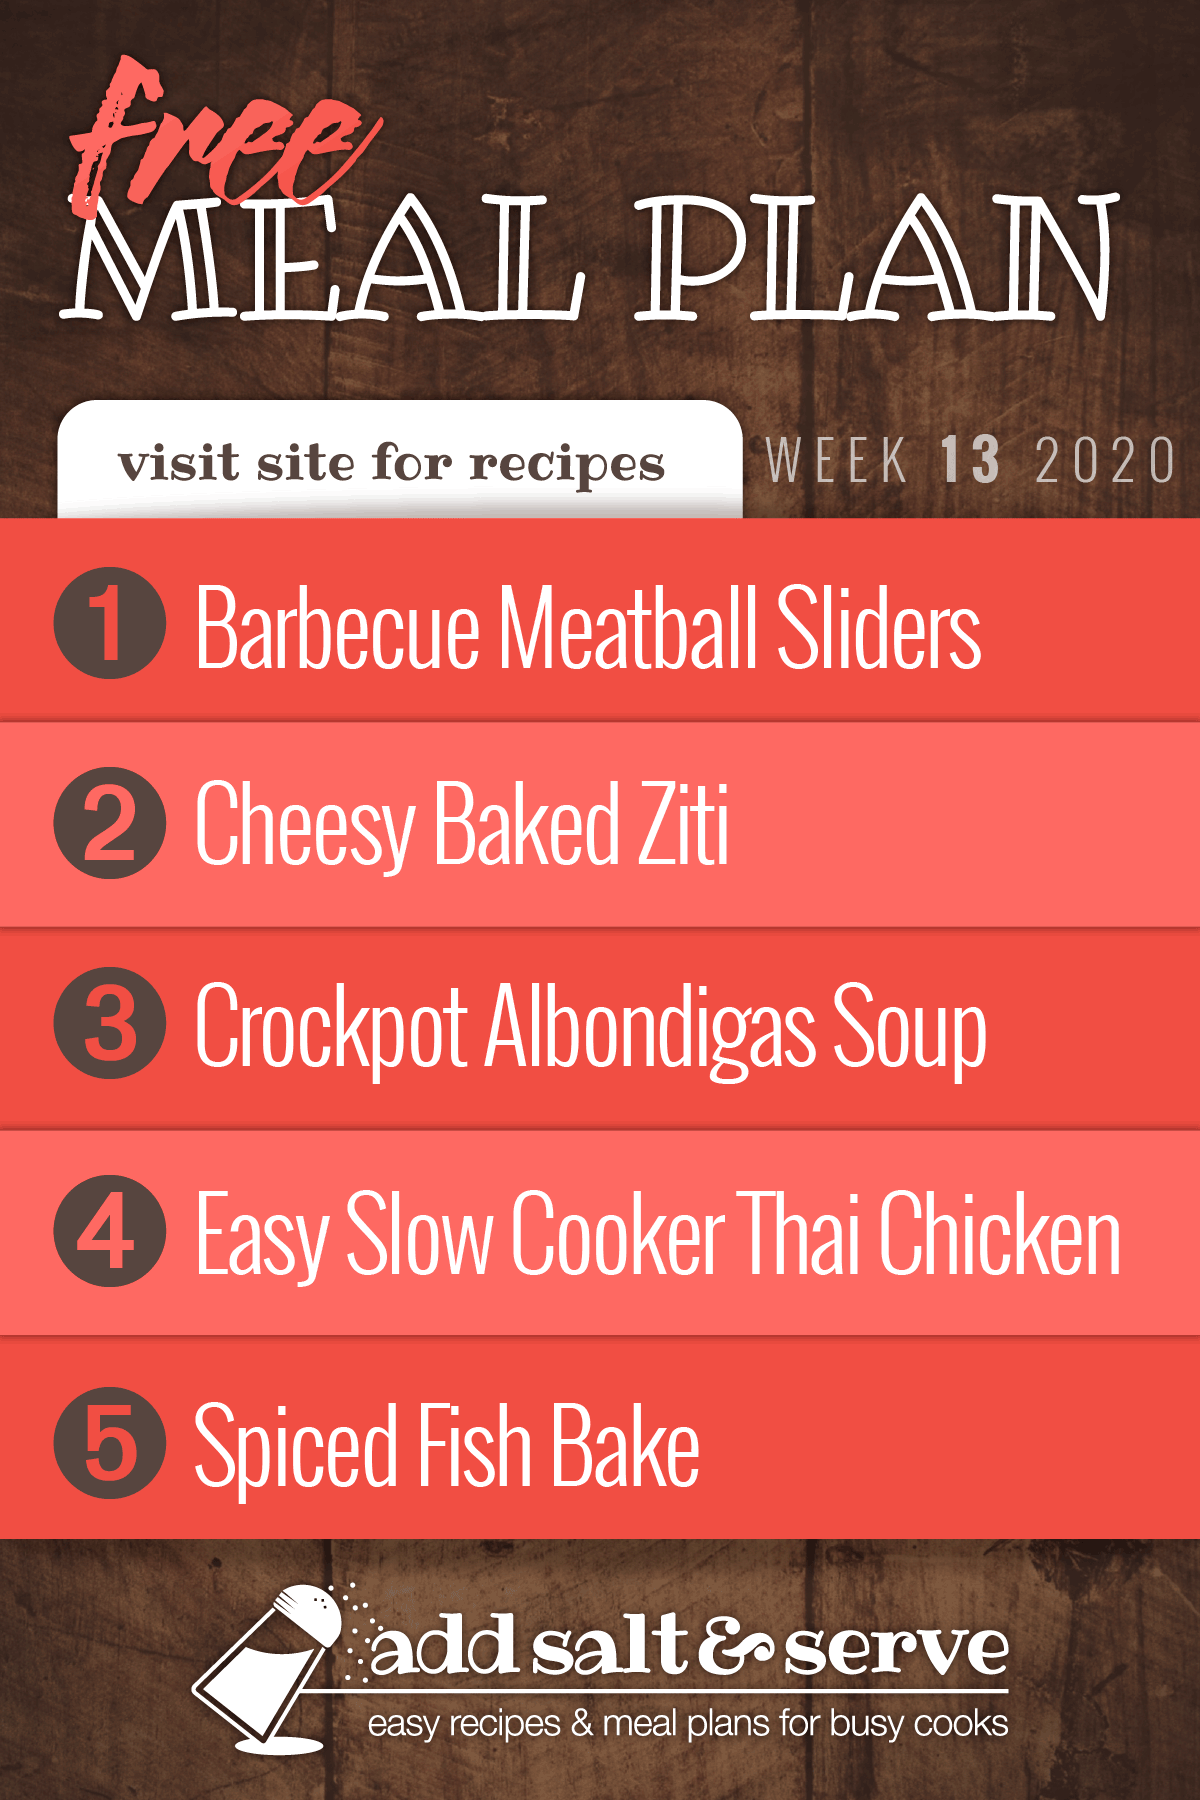 Free Meal Plan for Week 13 2020: Barbecue Meatball Sliders, Cheesy Baked Ziti, Crockpot Albondigas Soup, Easy Slow Cooker Thai Chicken over Rice, Spiced Fish Bake